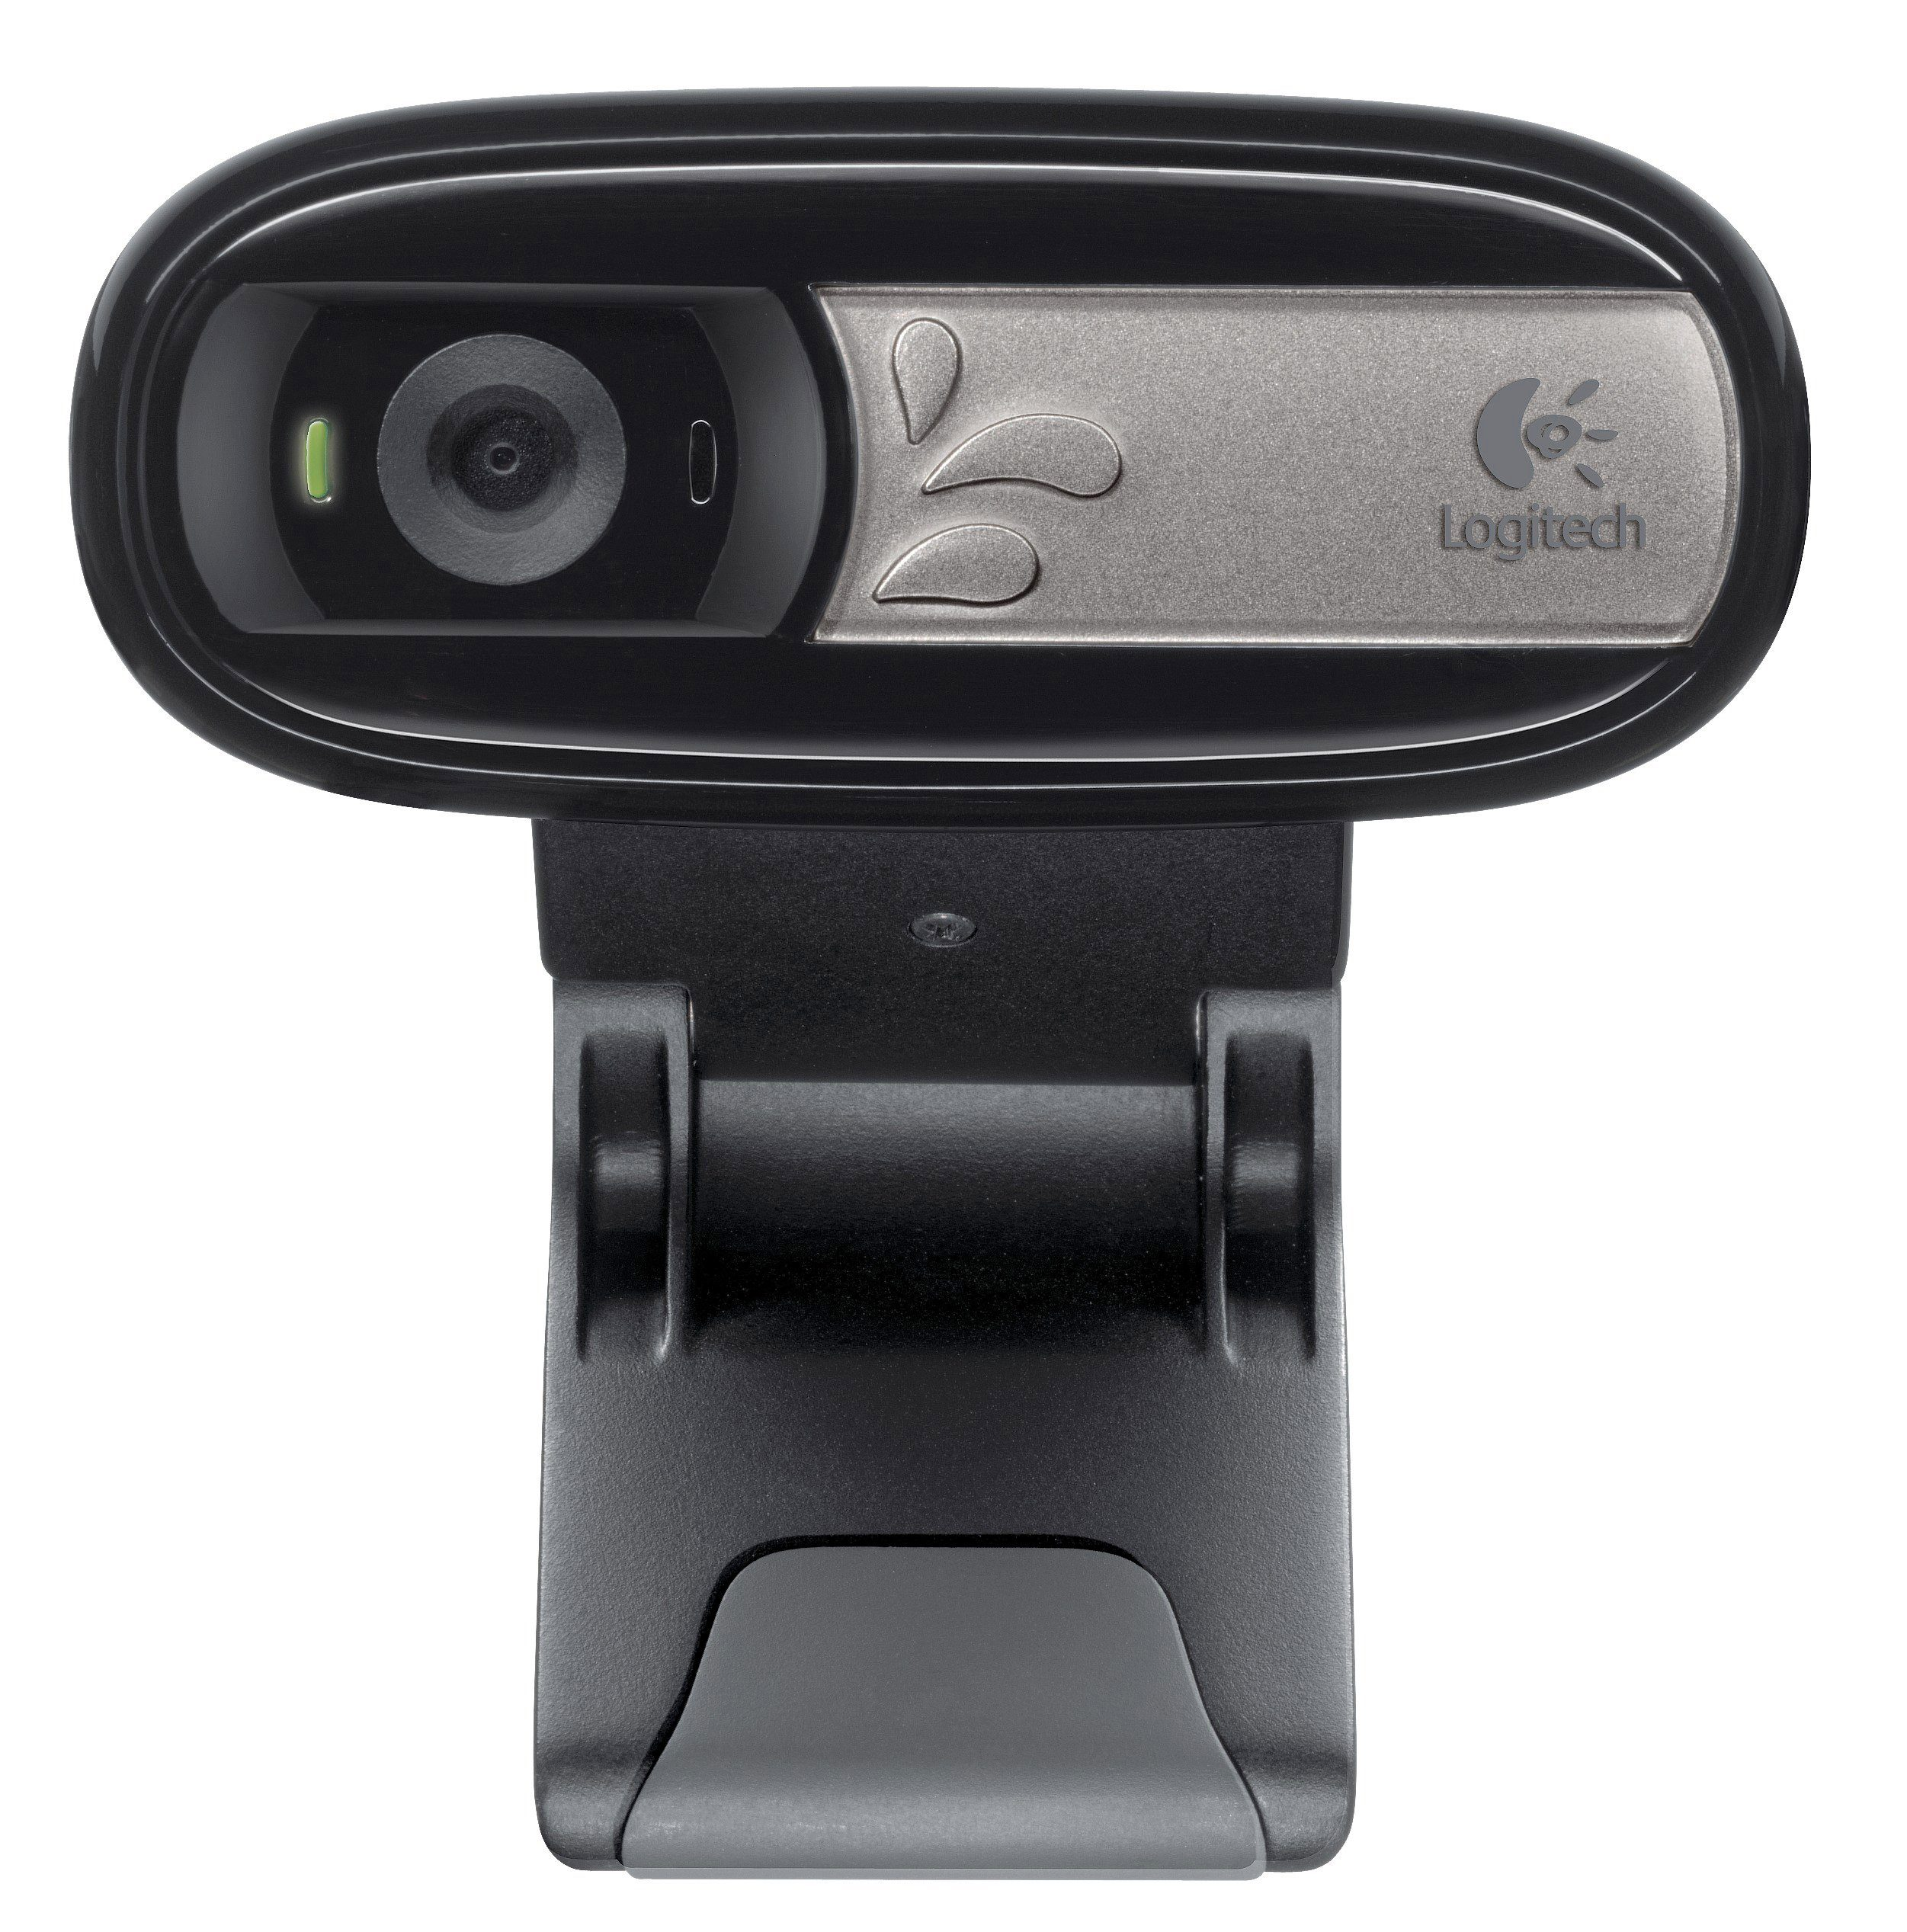 Logitech Webcam »WEBCAM C170 - BLACK - USB -EME«